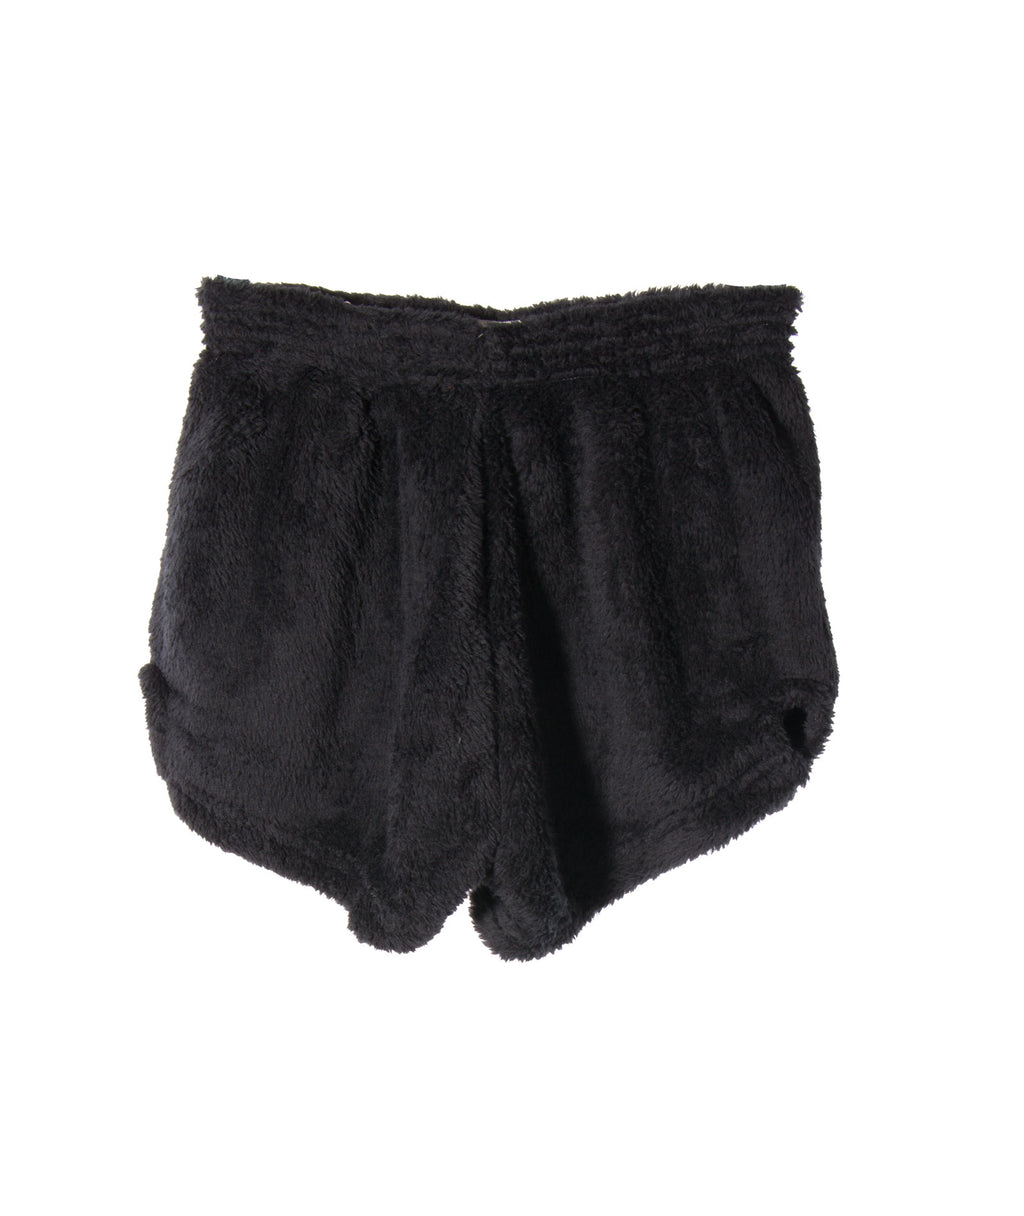 Made with Love and Kisses Girls Black Bolt Shorts